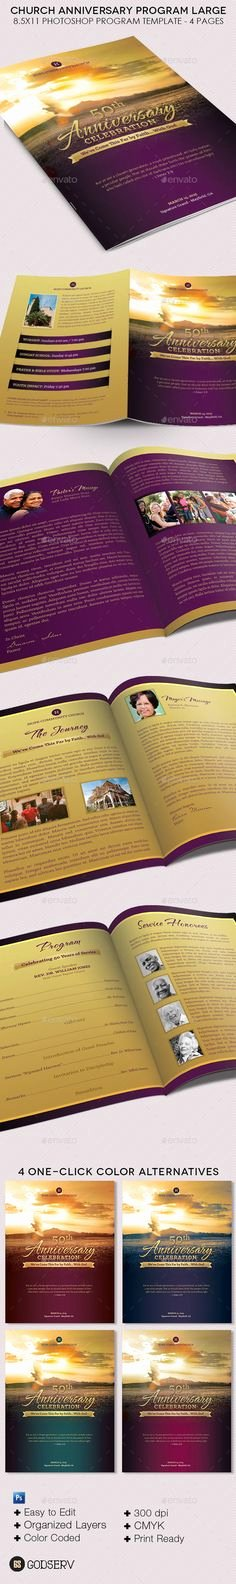 Pastor Appreciation Day Program Template Awesome 14 Best Printable Church Bulletins Images